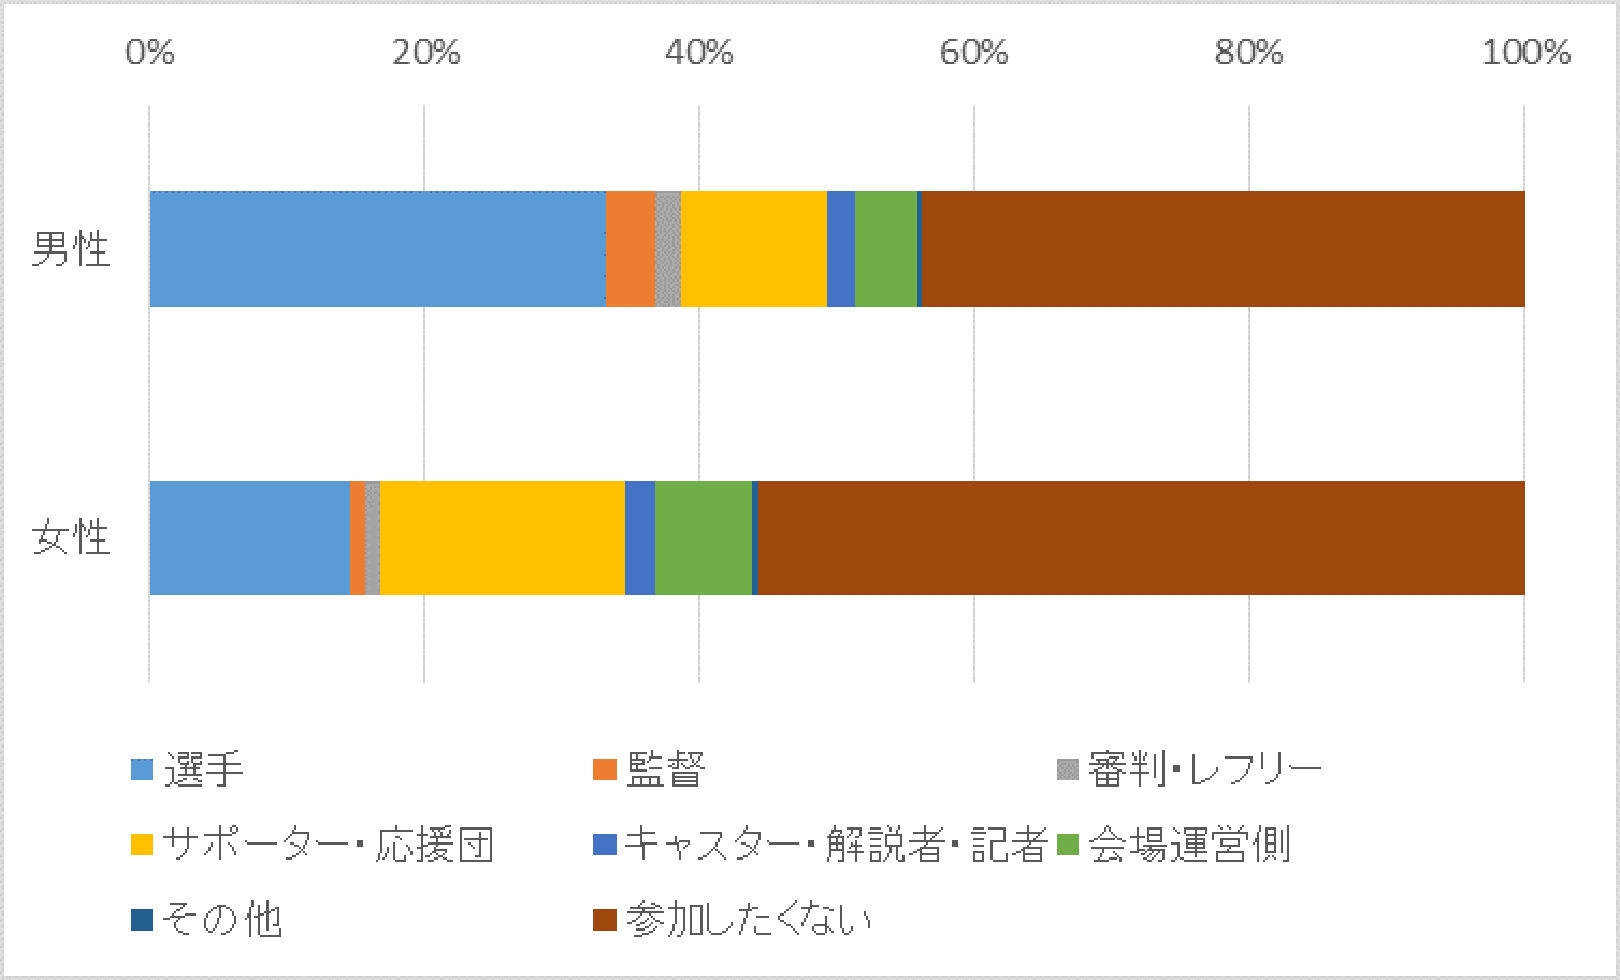 201807-19-fig-03.png